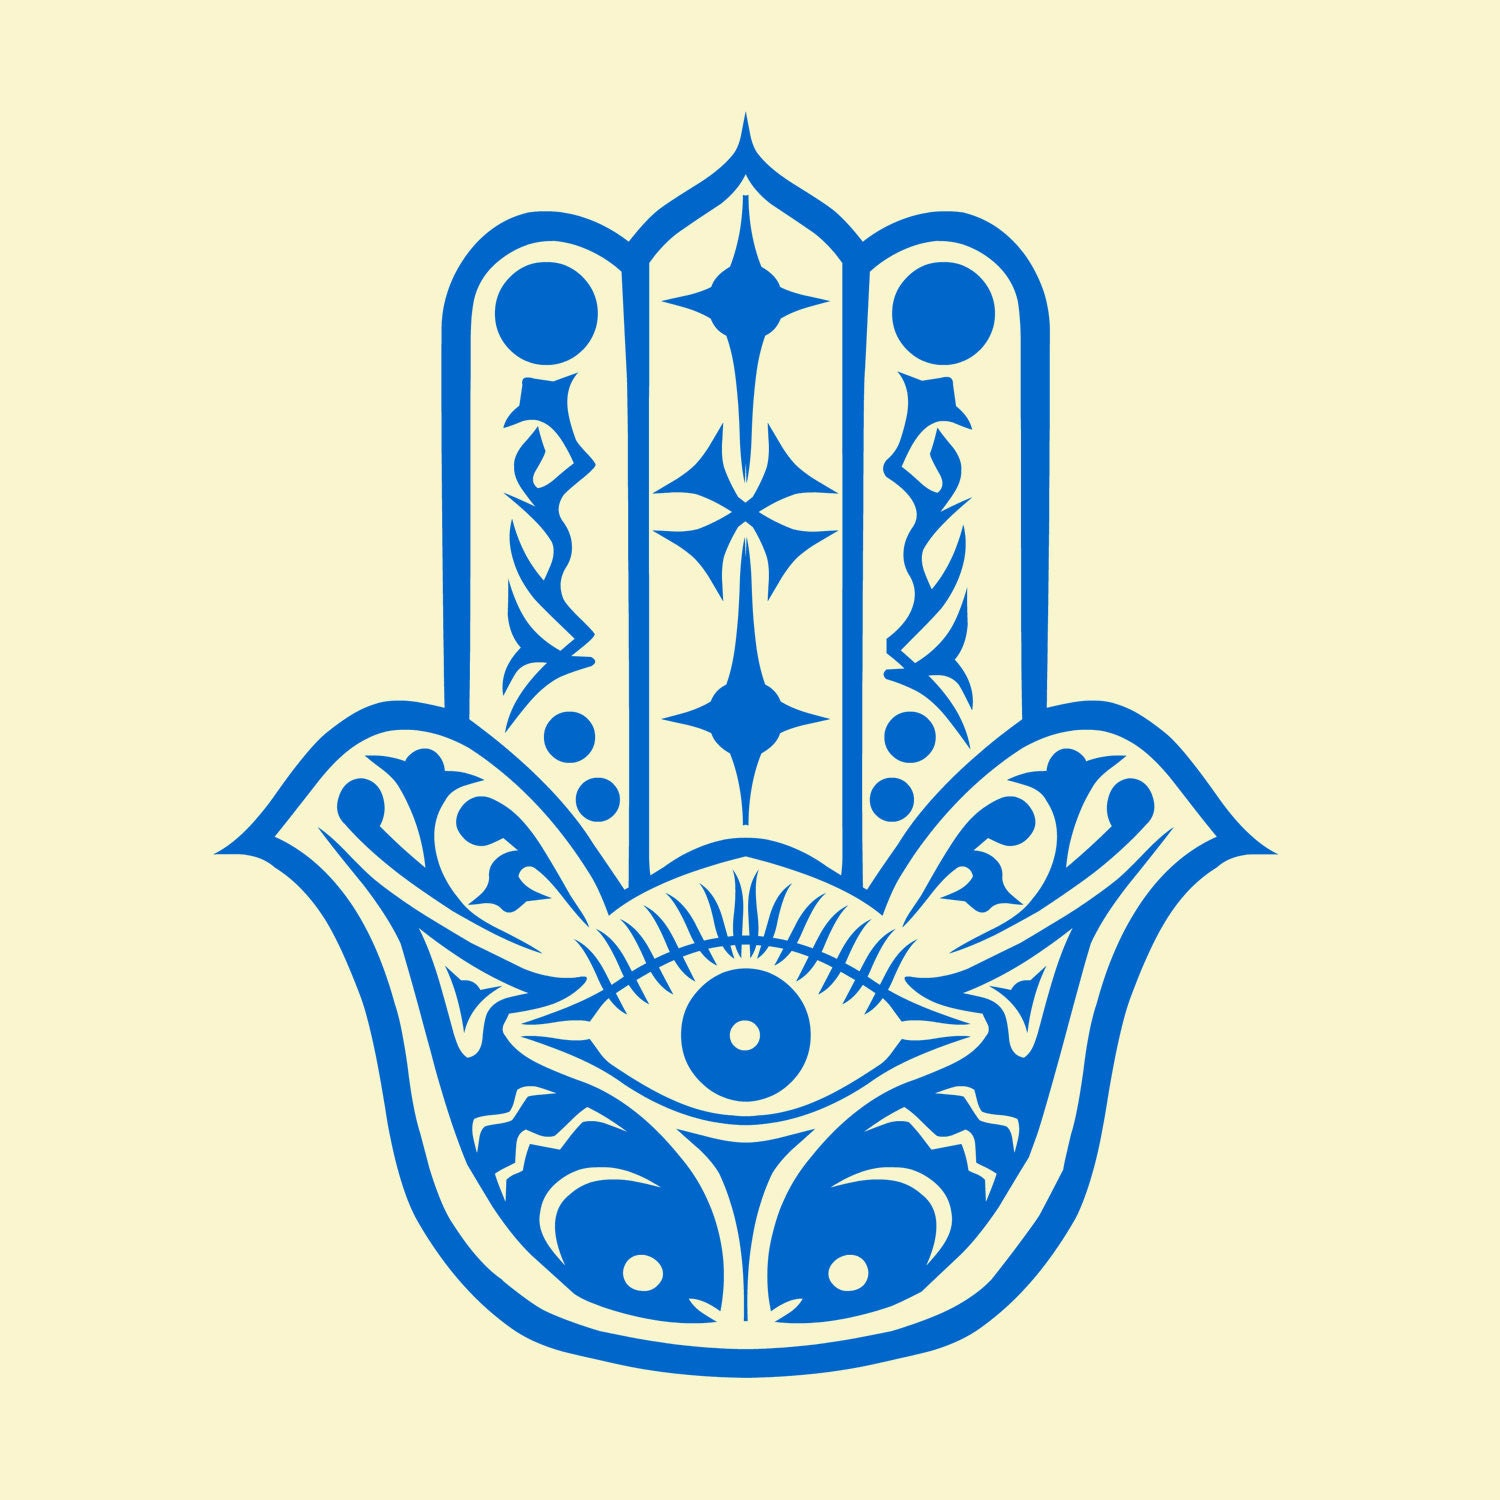 Hamsa on pinterest hamsa tattoo evil eye and coloring for Evil eye coloring pages